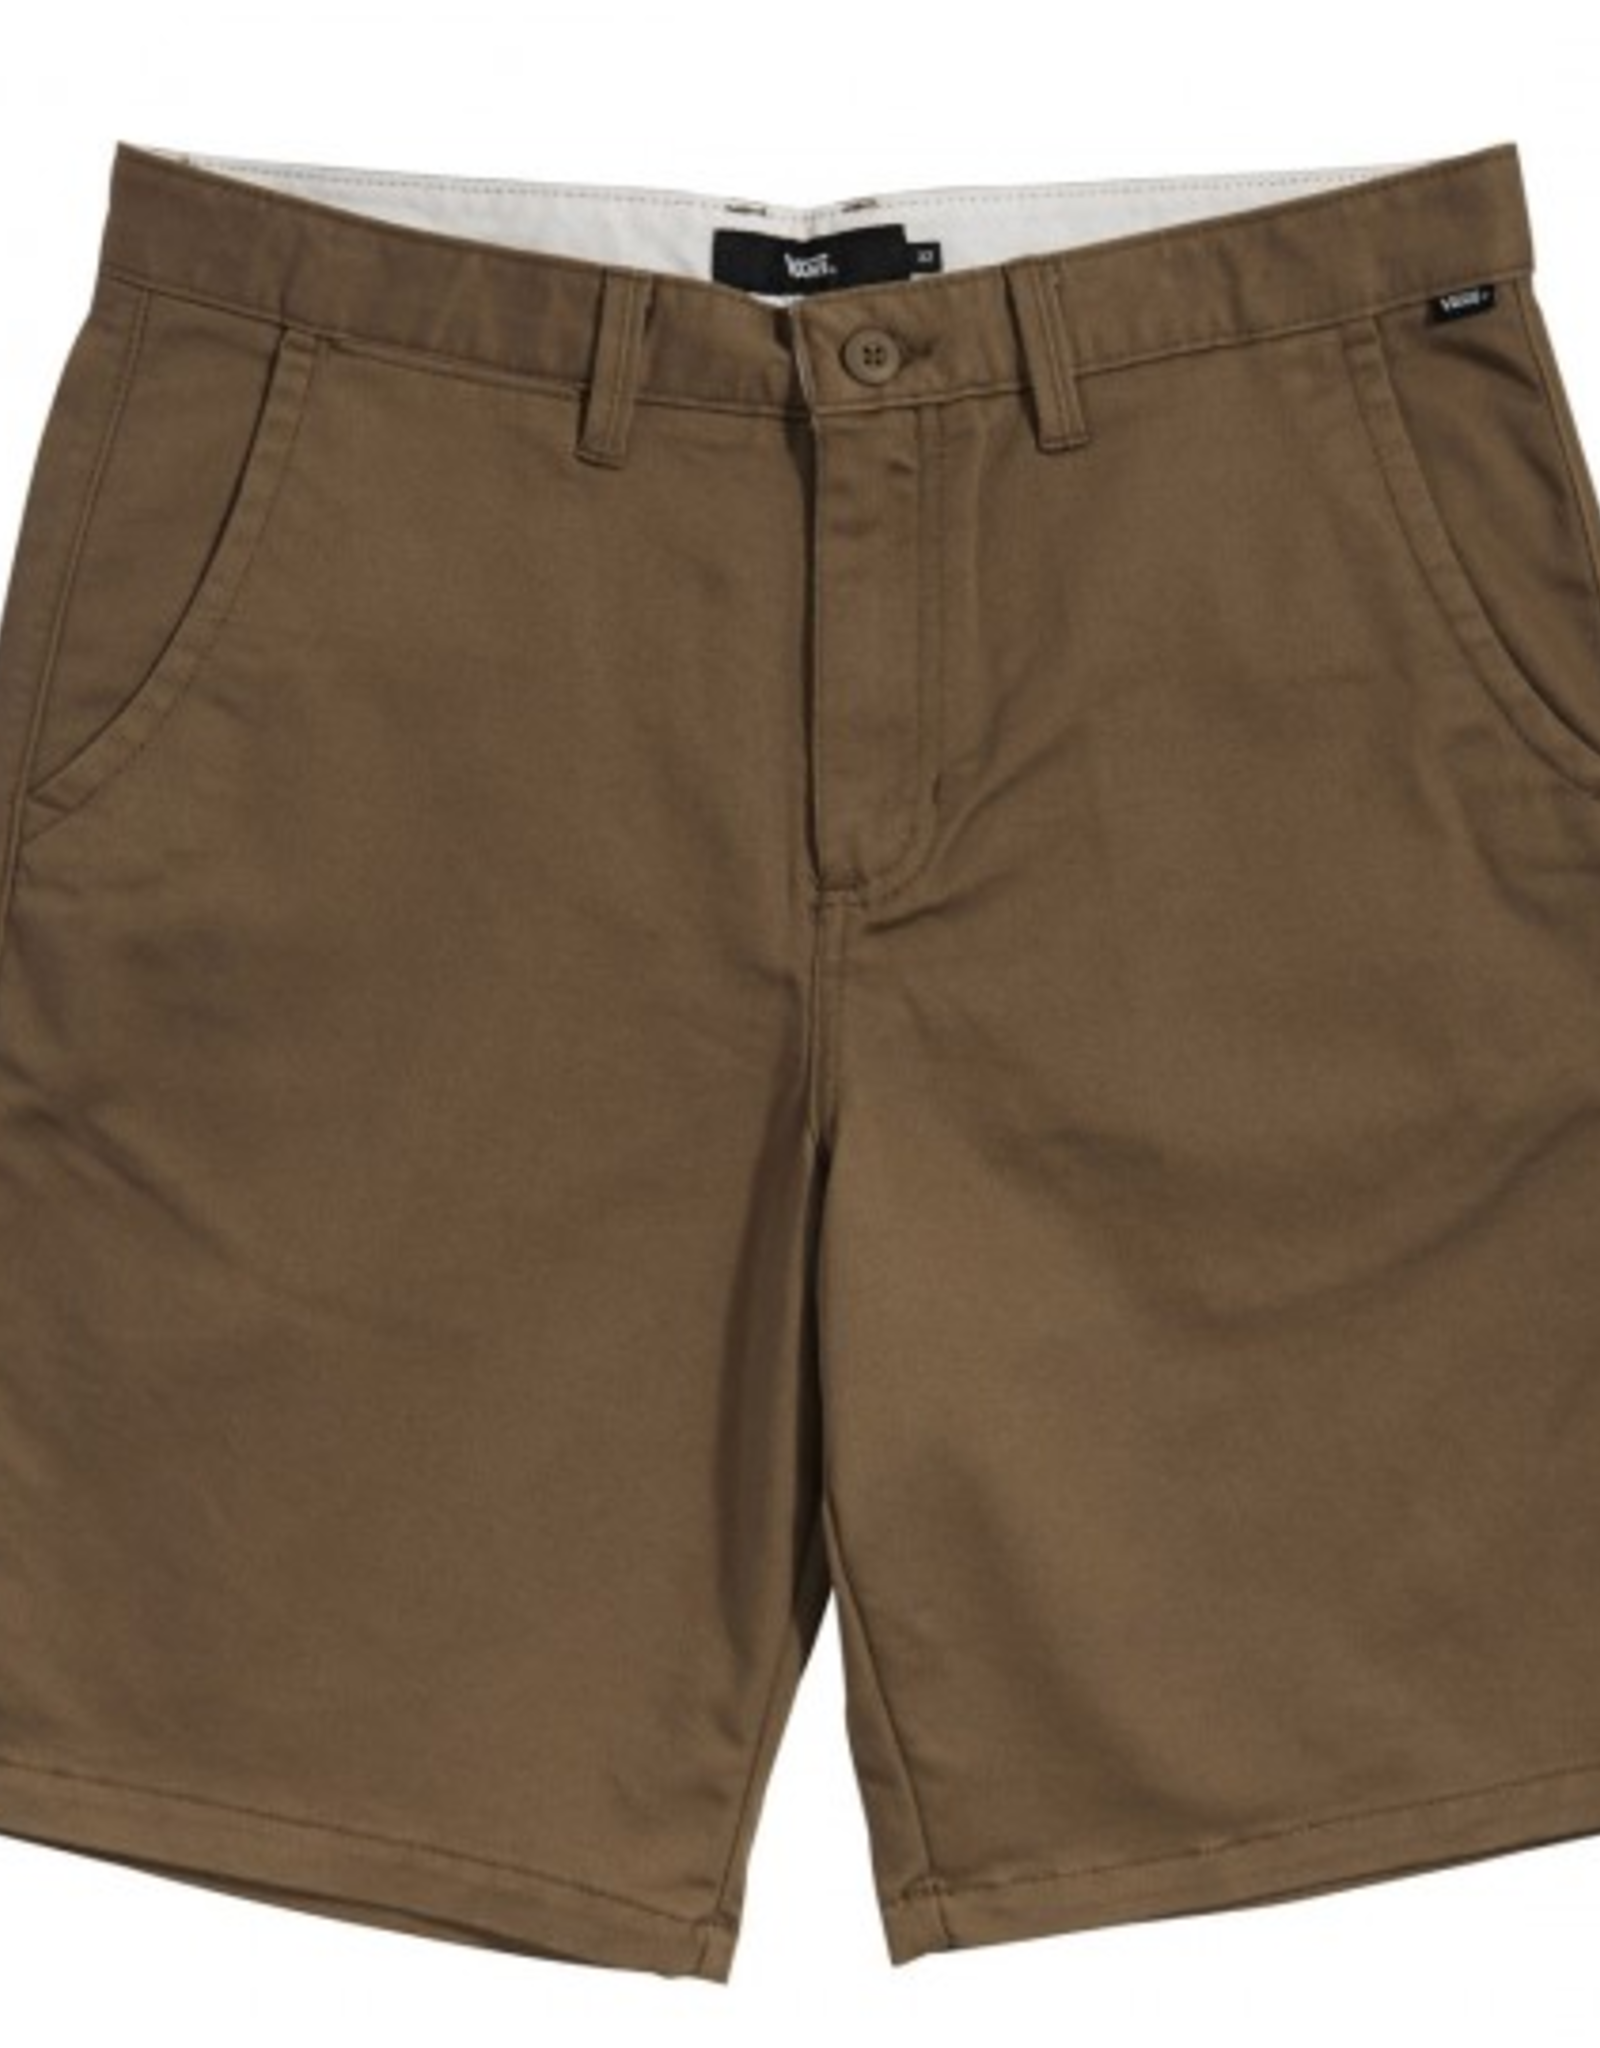 VANS VANS AUTHENTIC STRETCH CHINO SHORTS DIRT